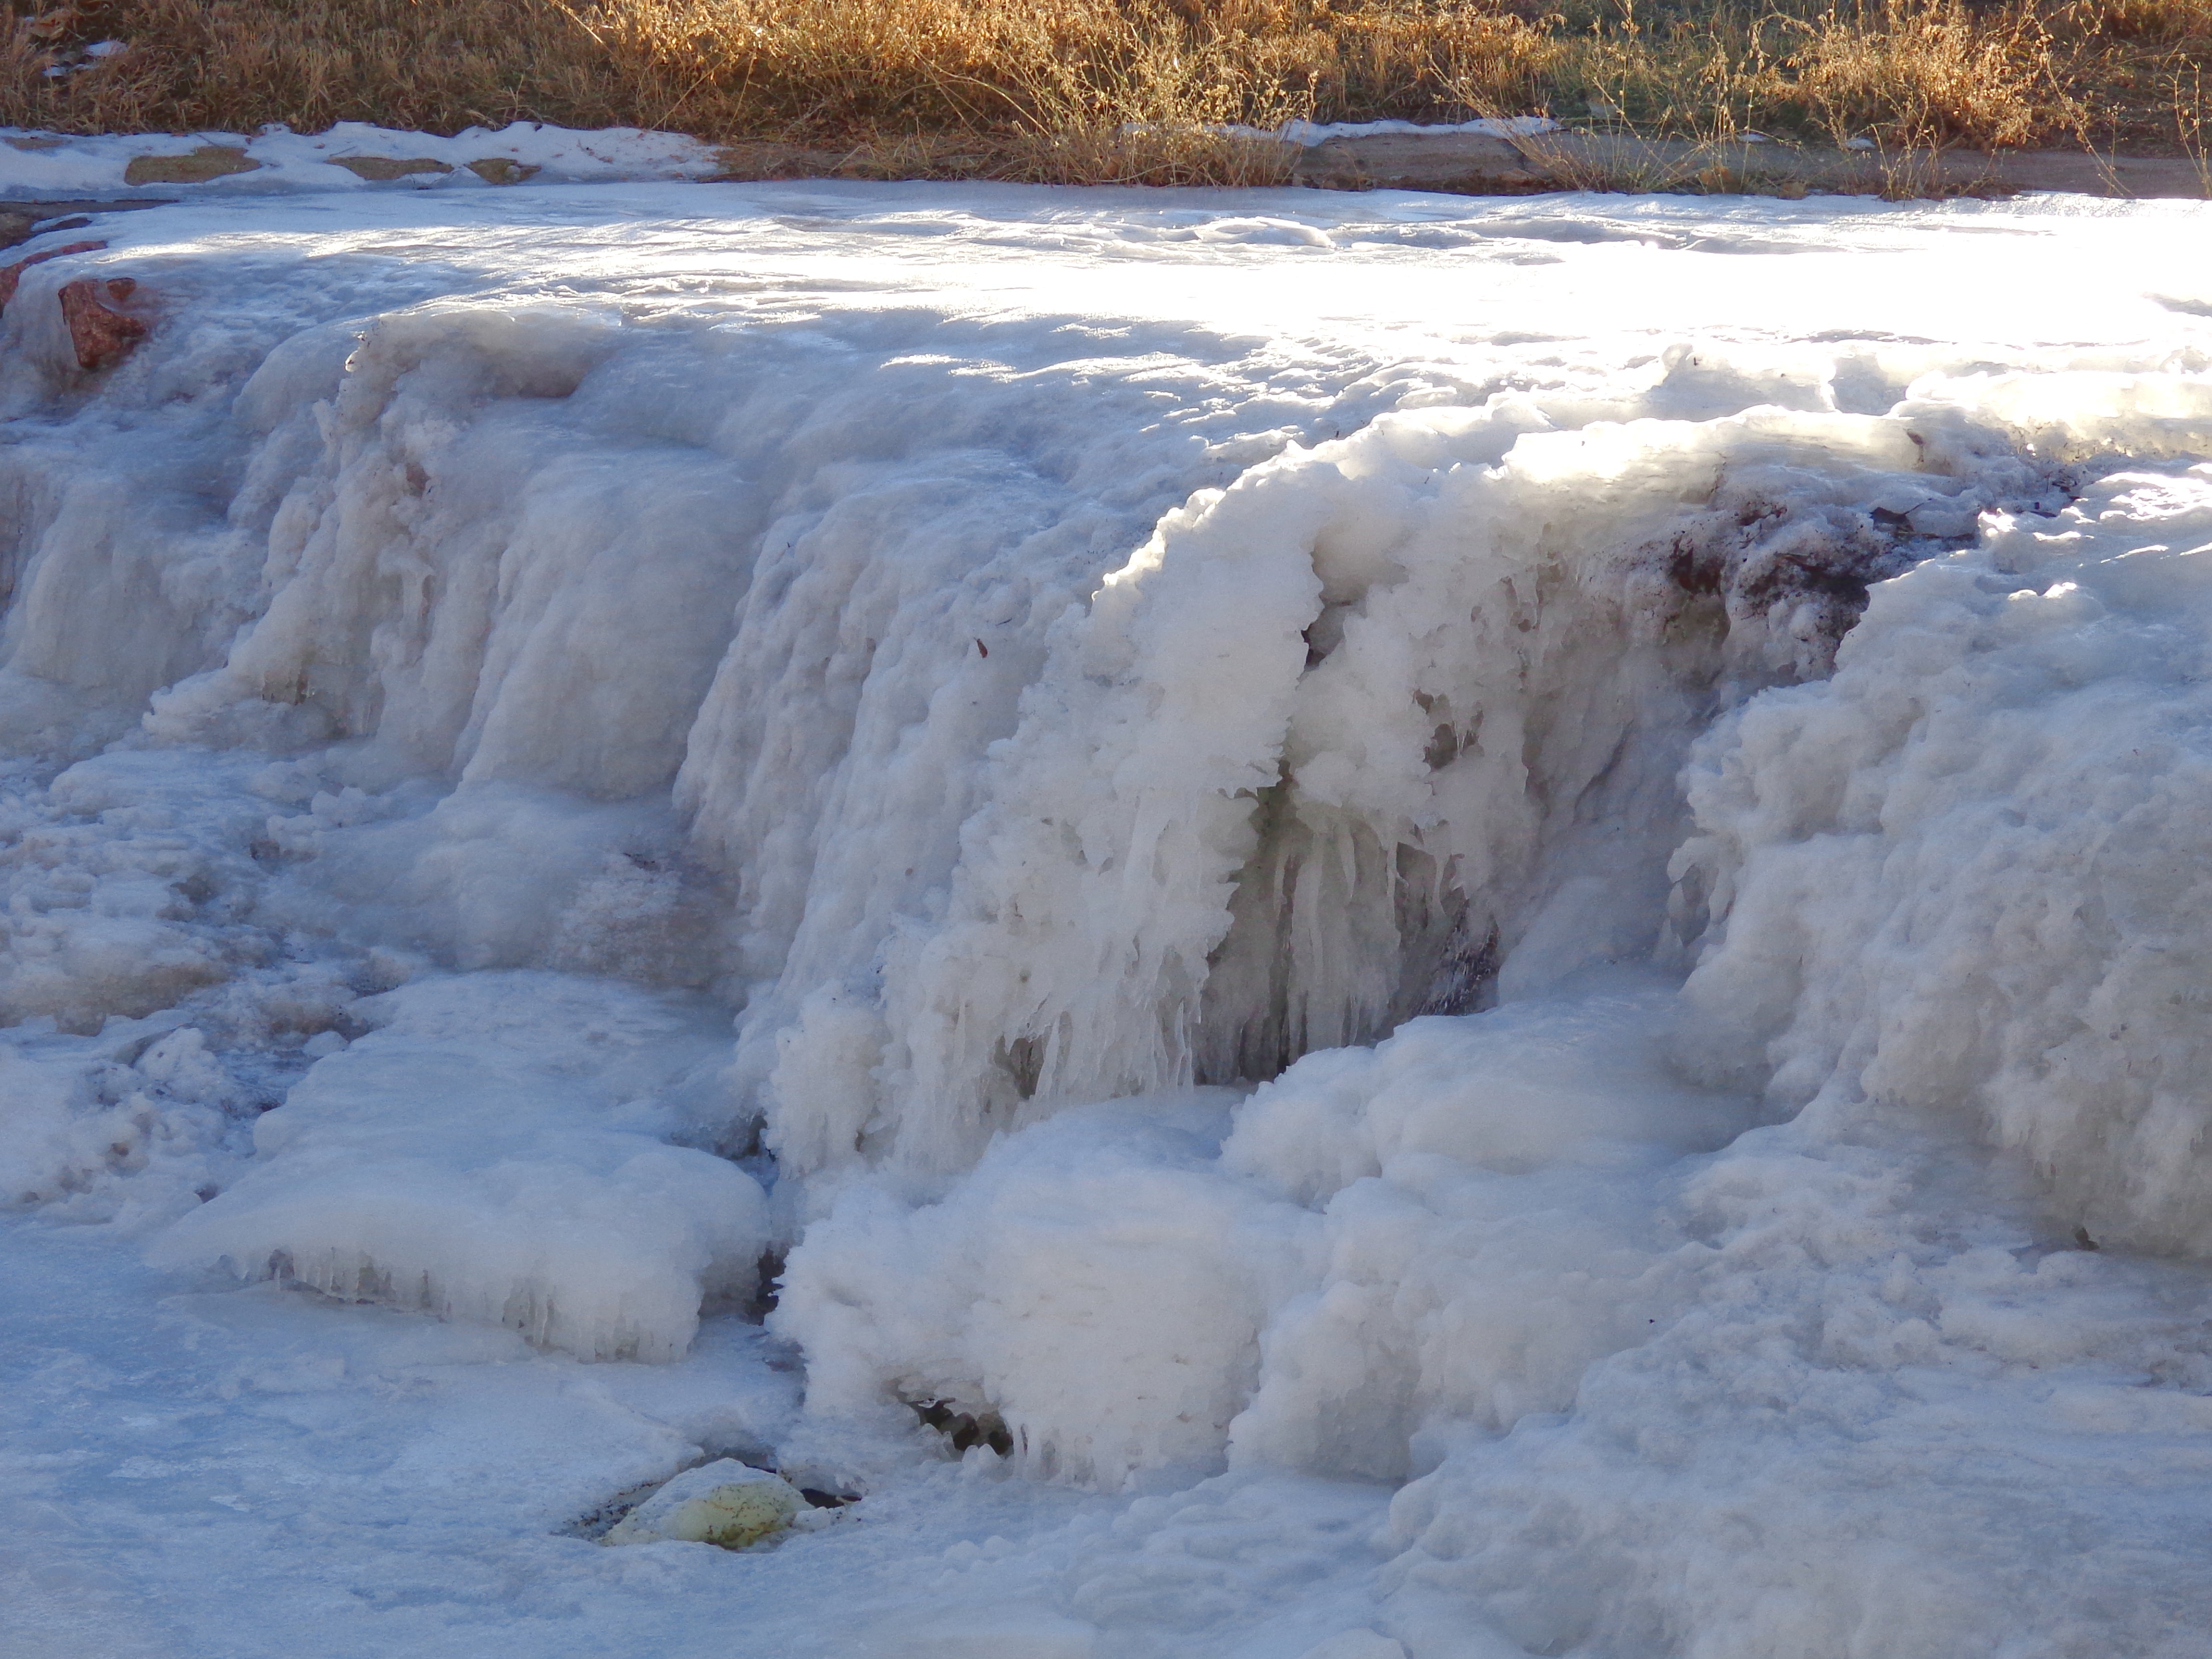 Frozen Waterfall On Winter River Picture Free Photograph